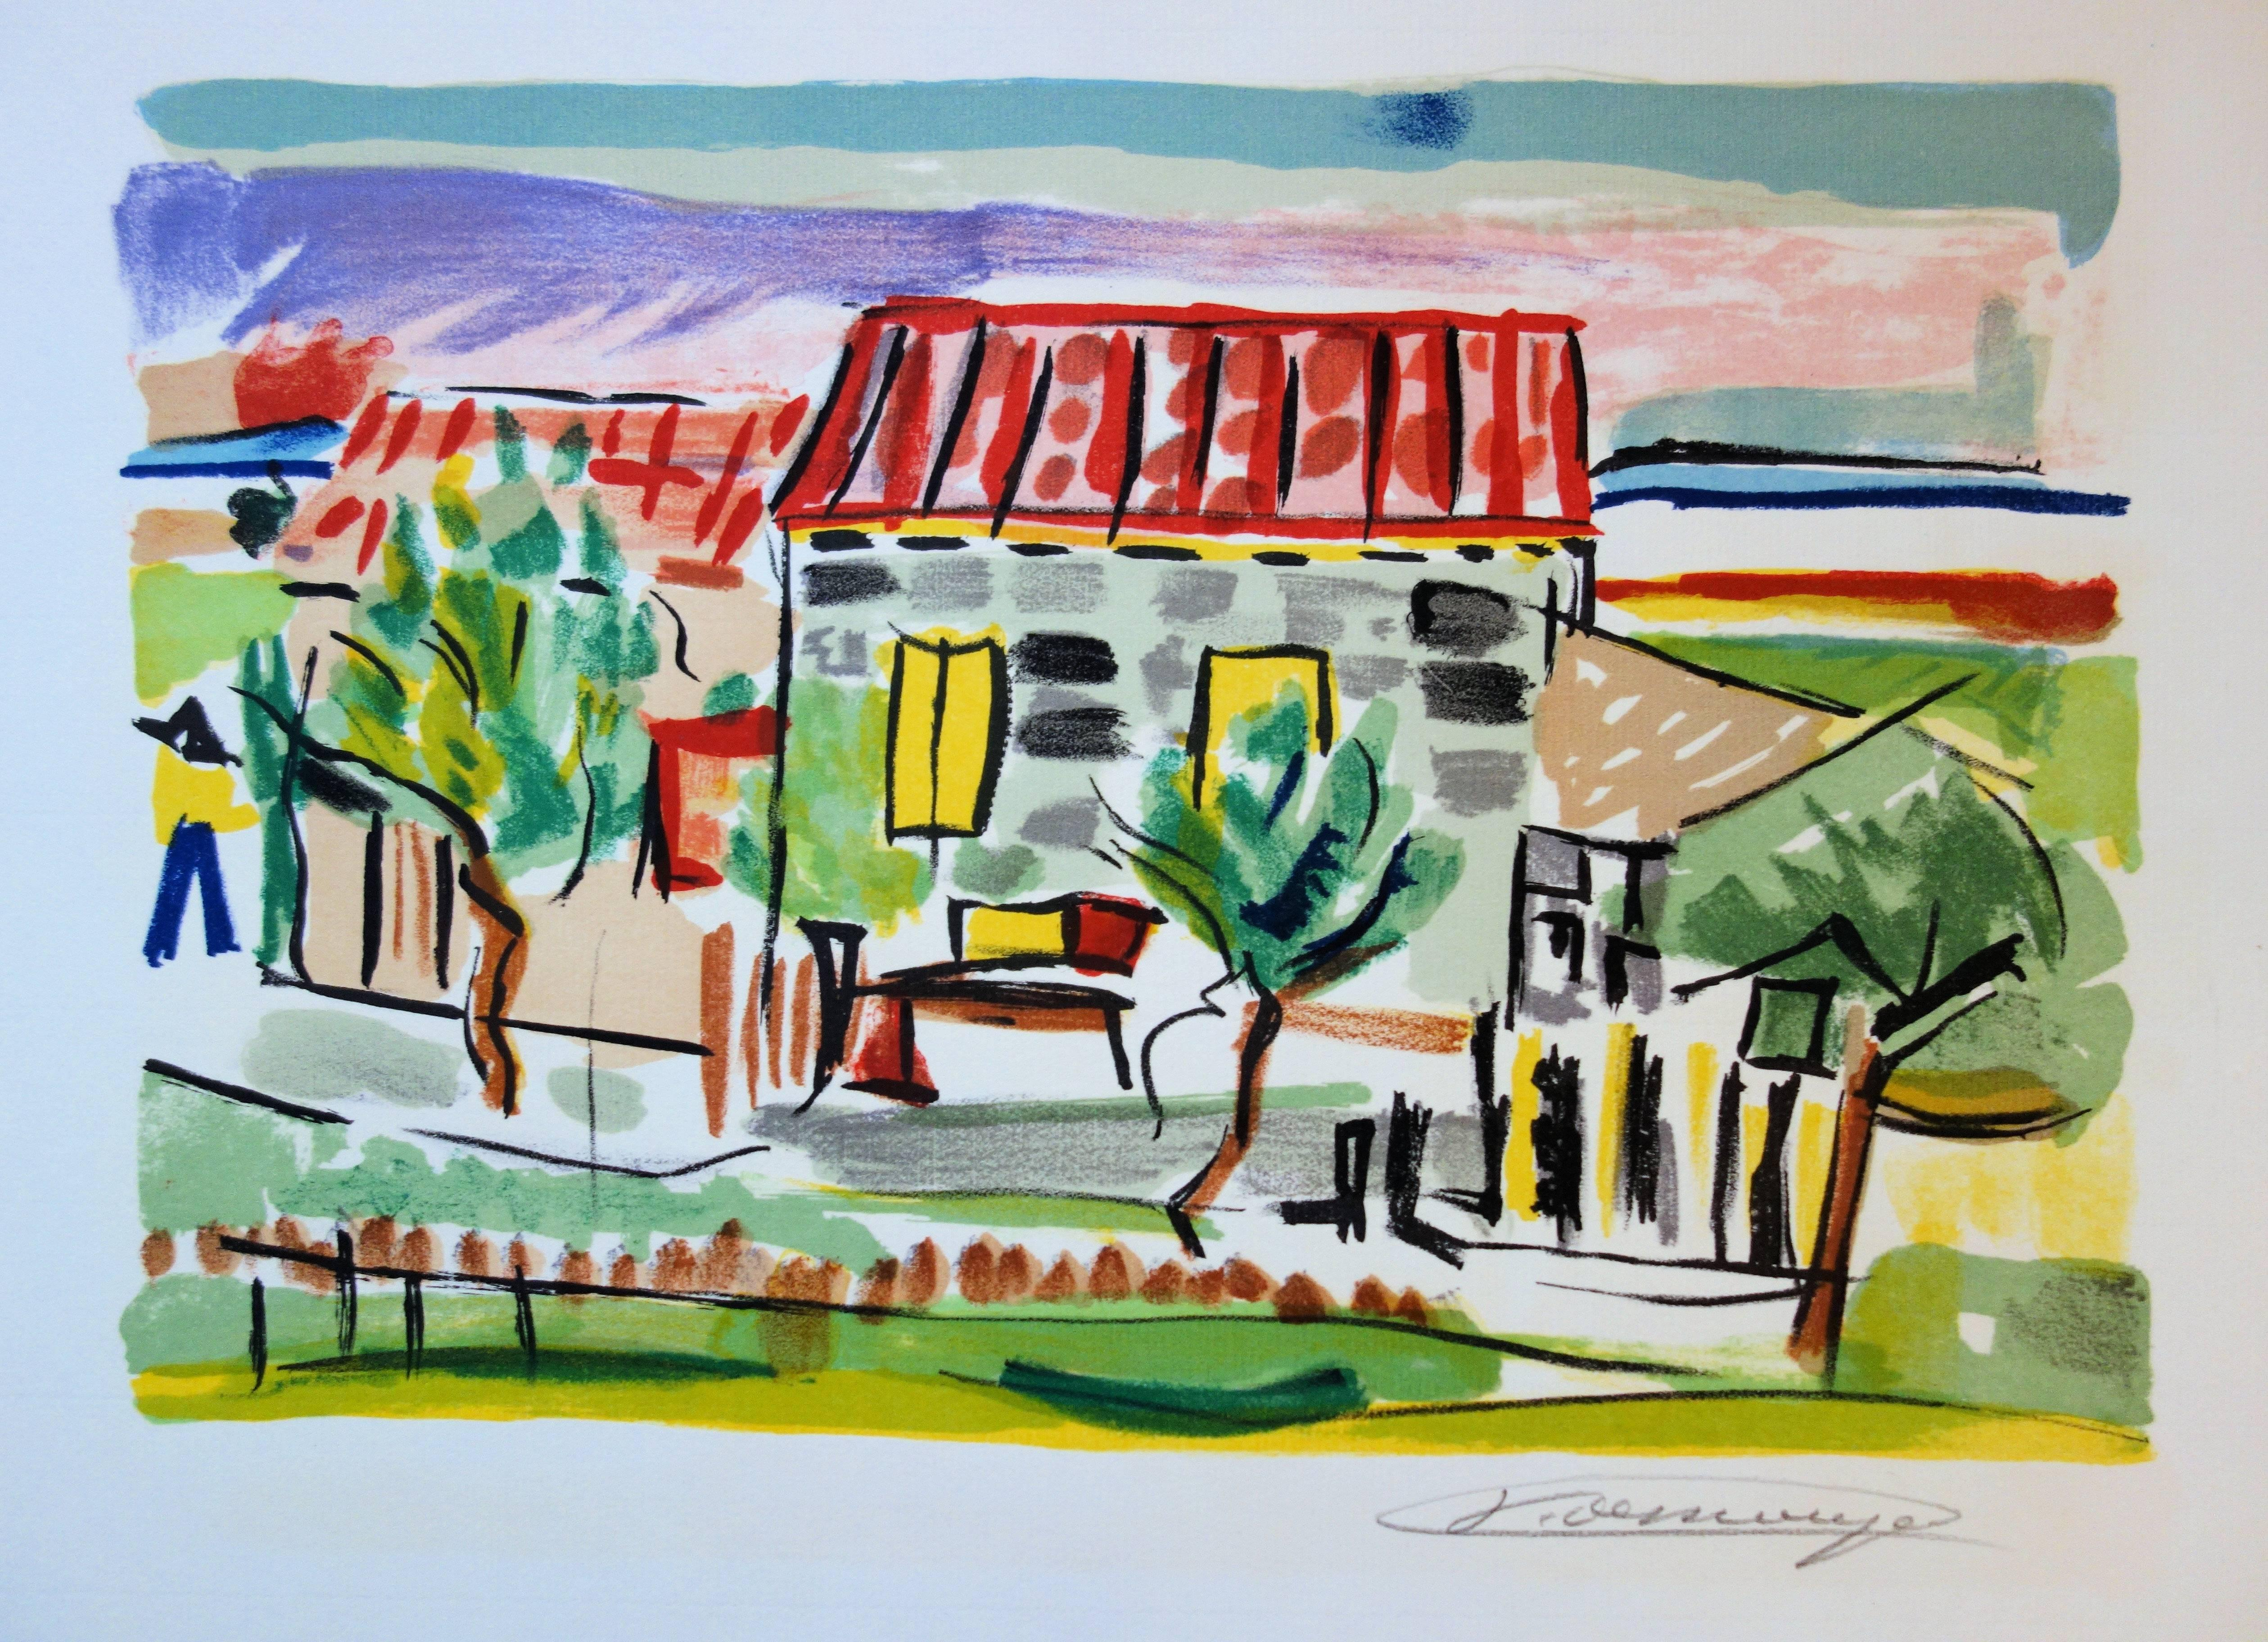 Red Roof House - Original handsigned lithograph